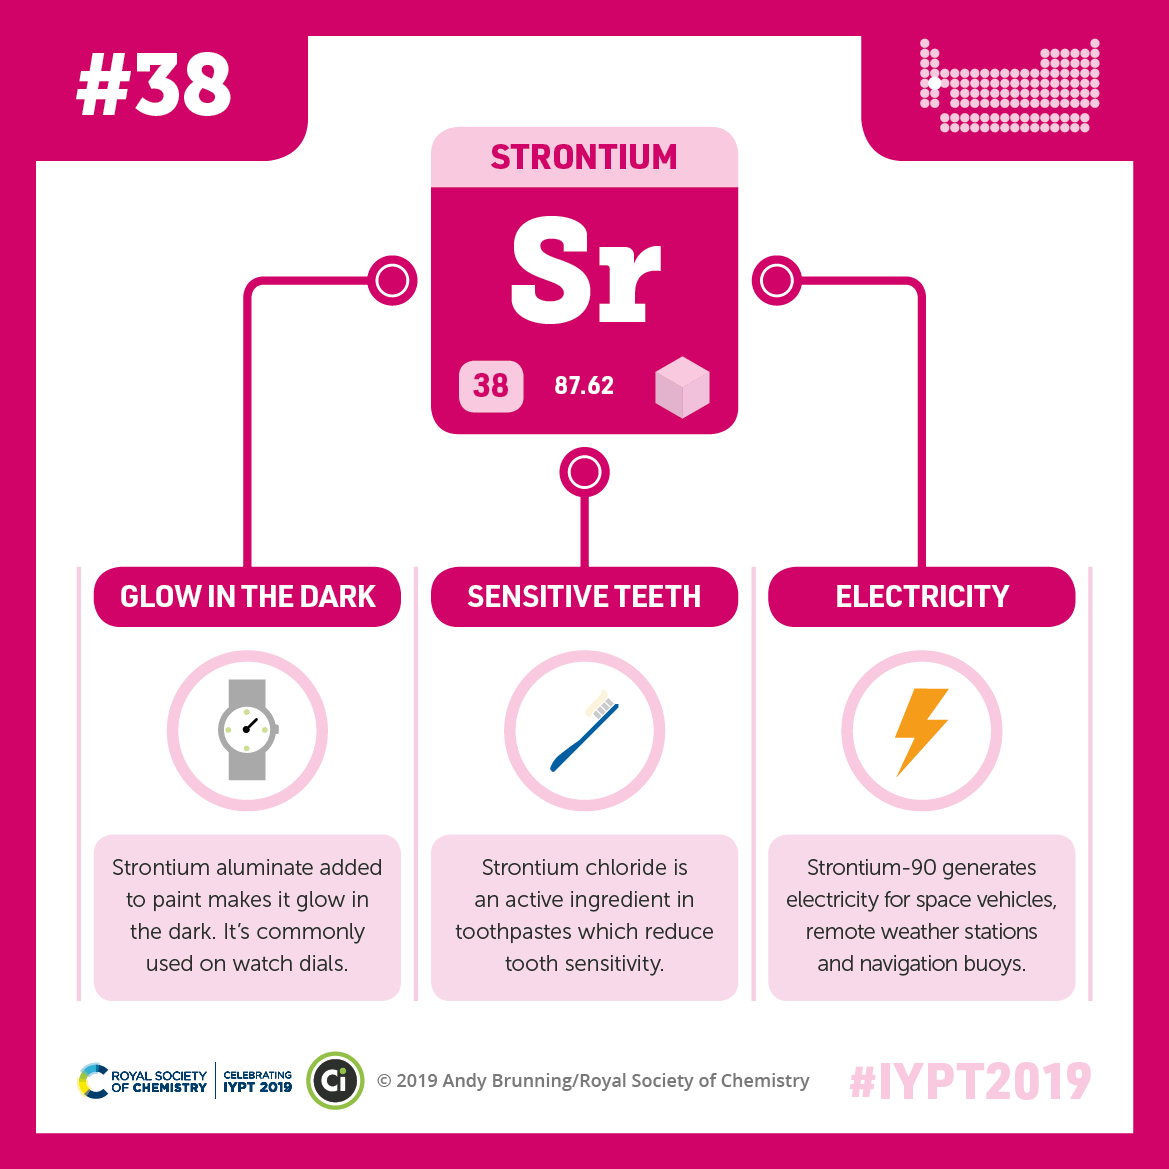 IYPT 2019 Elements 038: Strontium: Glow-in-the-dark paint and reducing tooth sensitivity